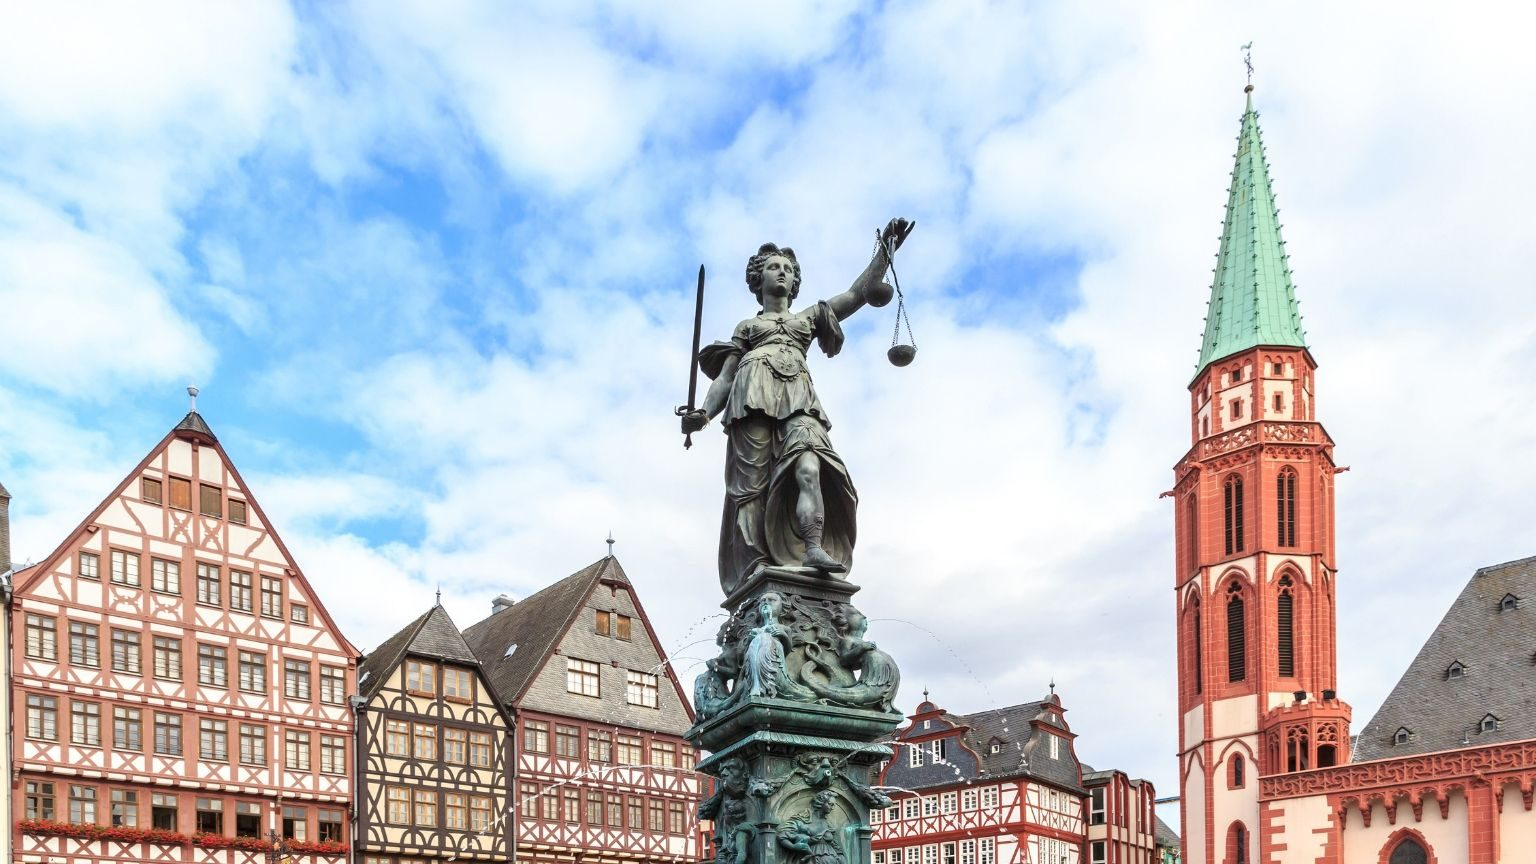 Old Town Square, Frankfurt, Germany